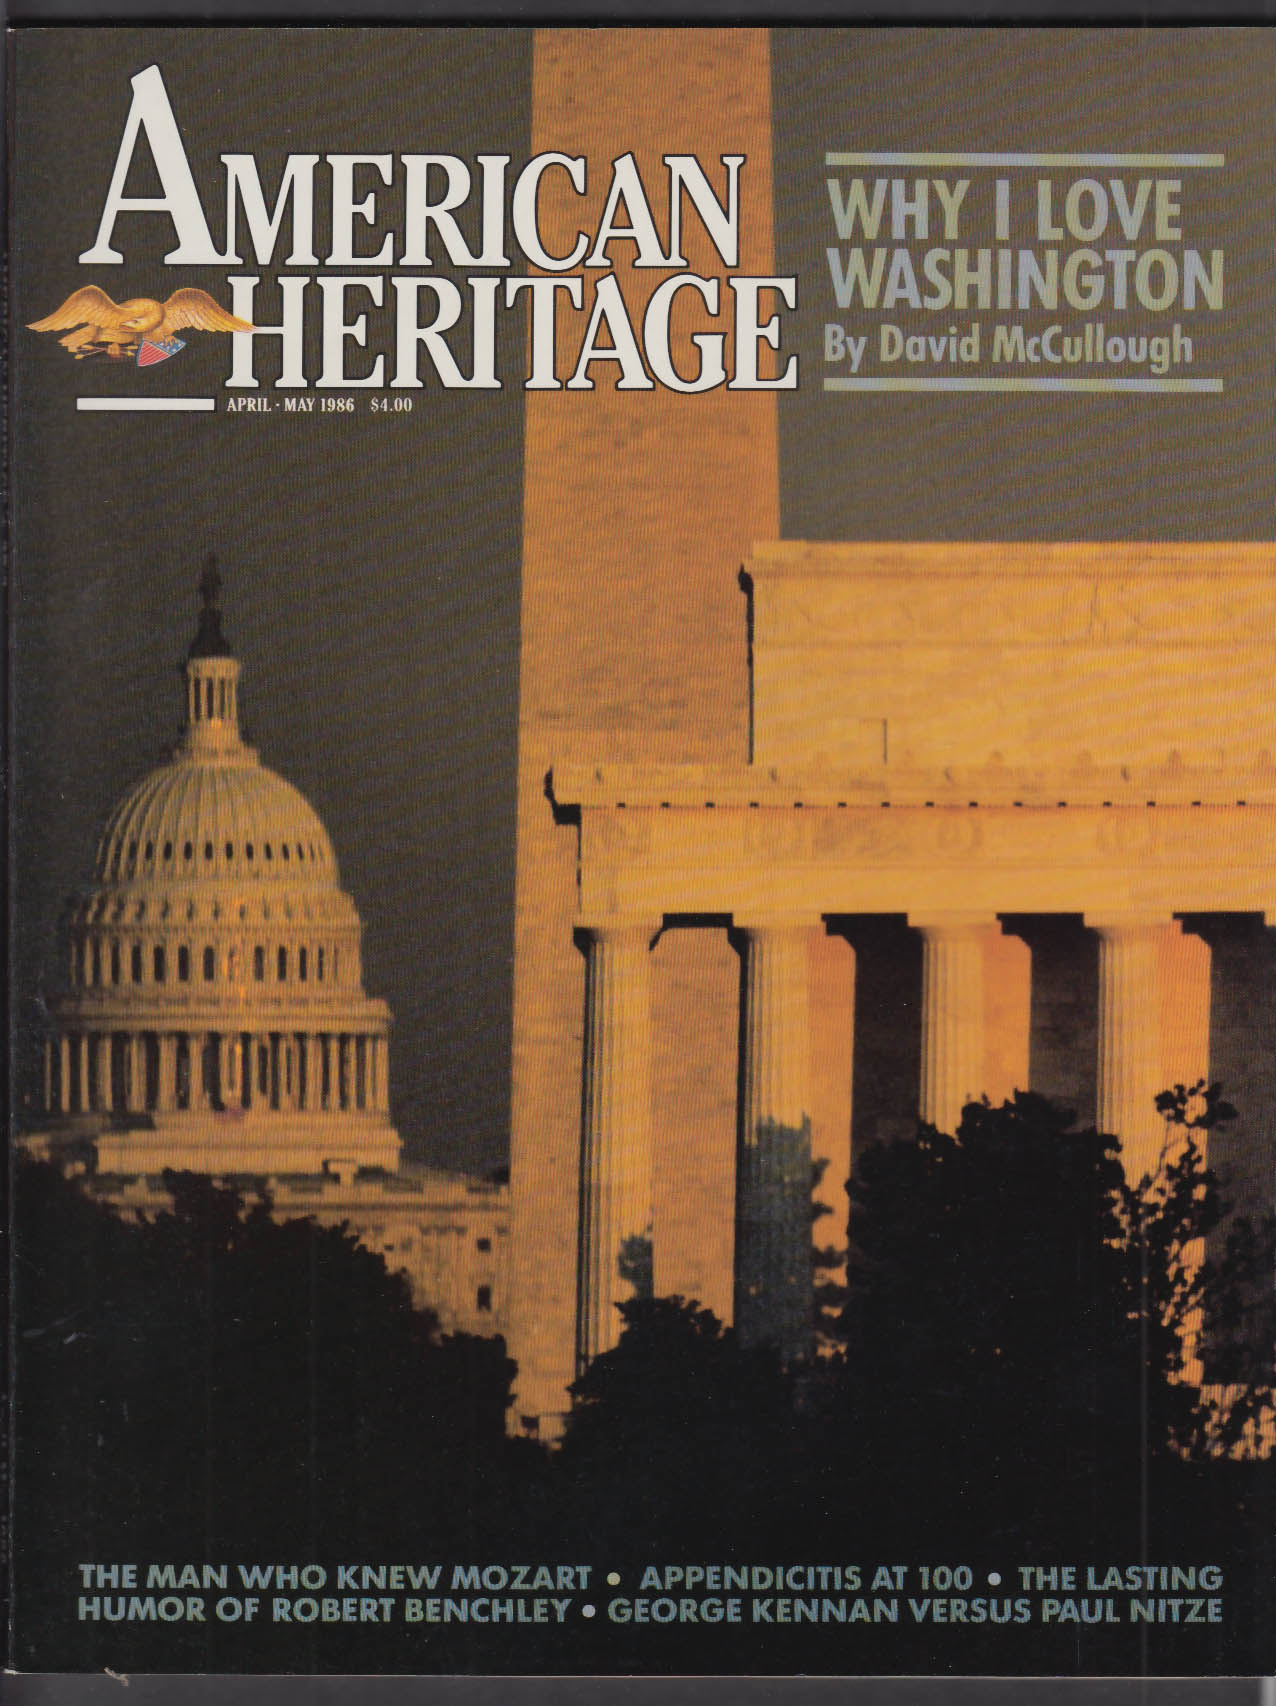 AMERICAN HERITAGE David McCullough Robert Benchley George Kennan + 4-5 1986